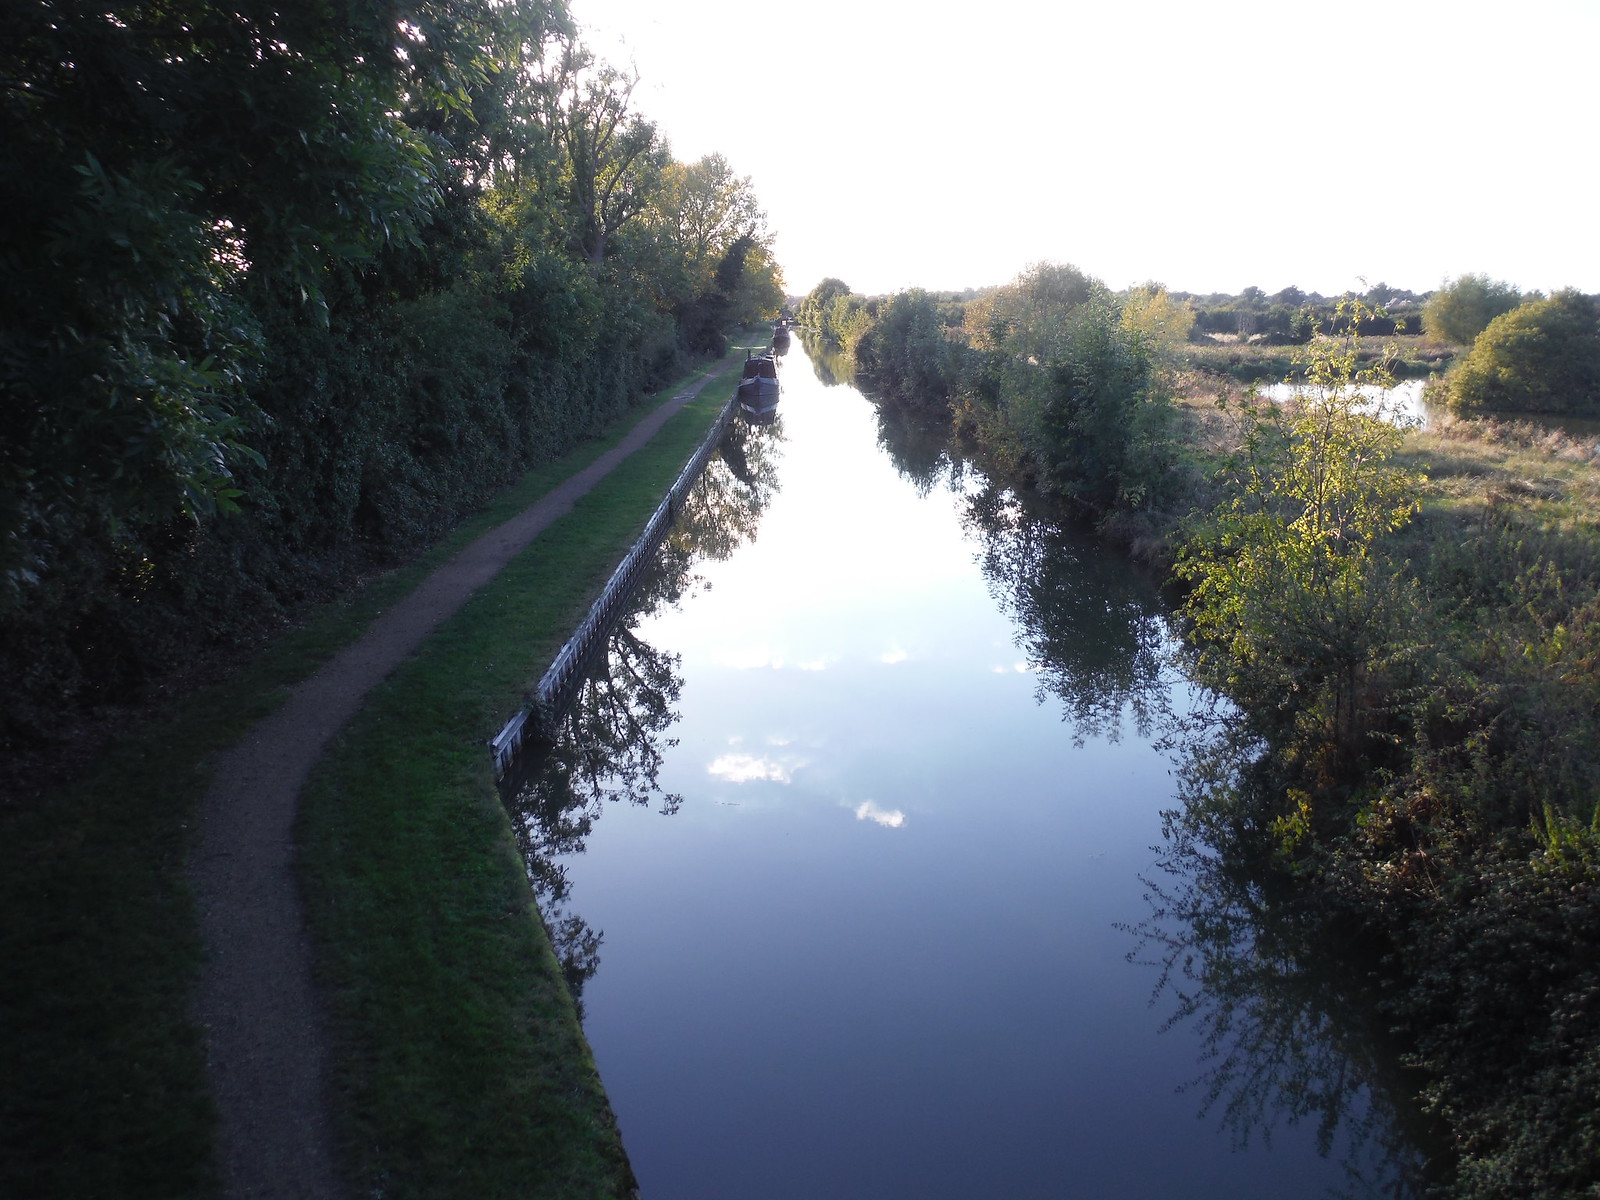 Grand Union Canal from brick arched bridge SWC Walk 194 Aylesbury Vale Parkway to Aylesbury